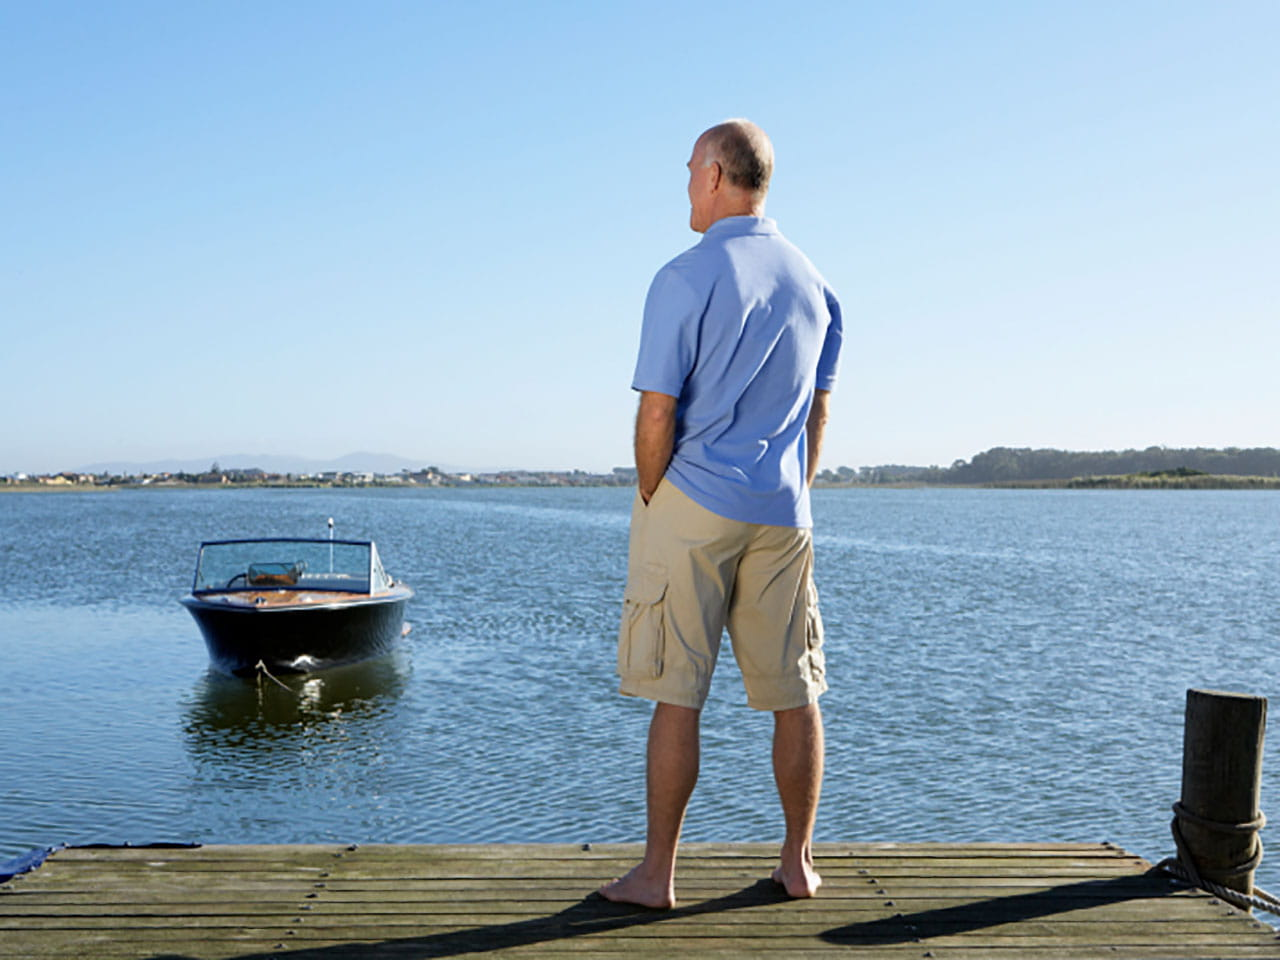 Man watching a boat at sea